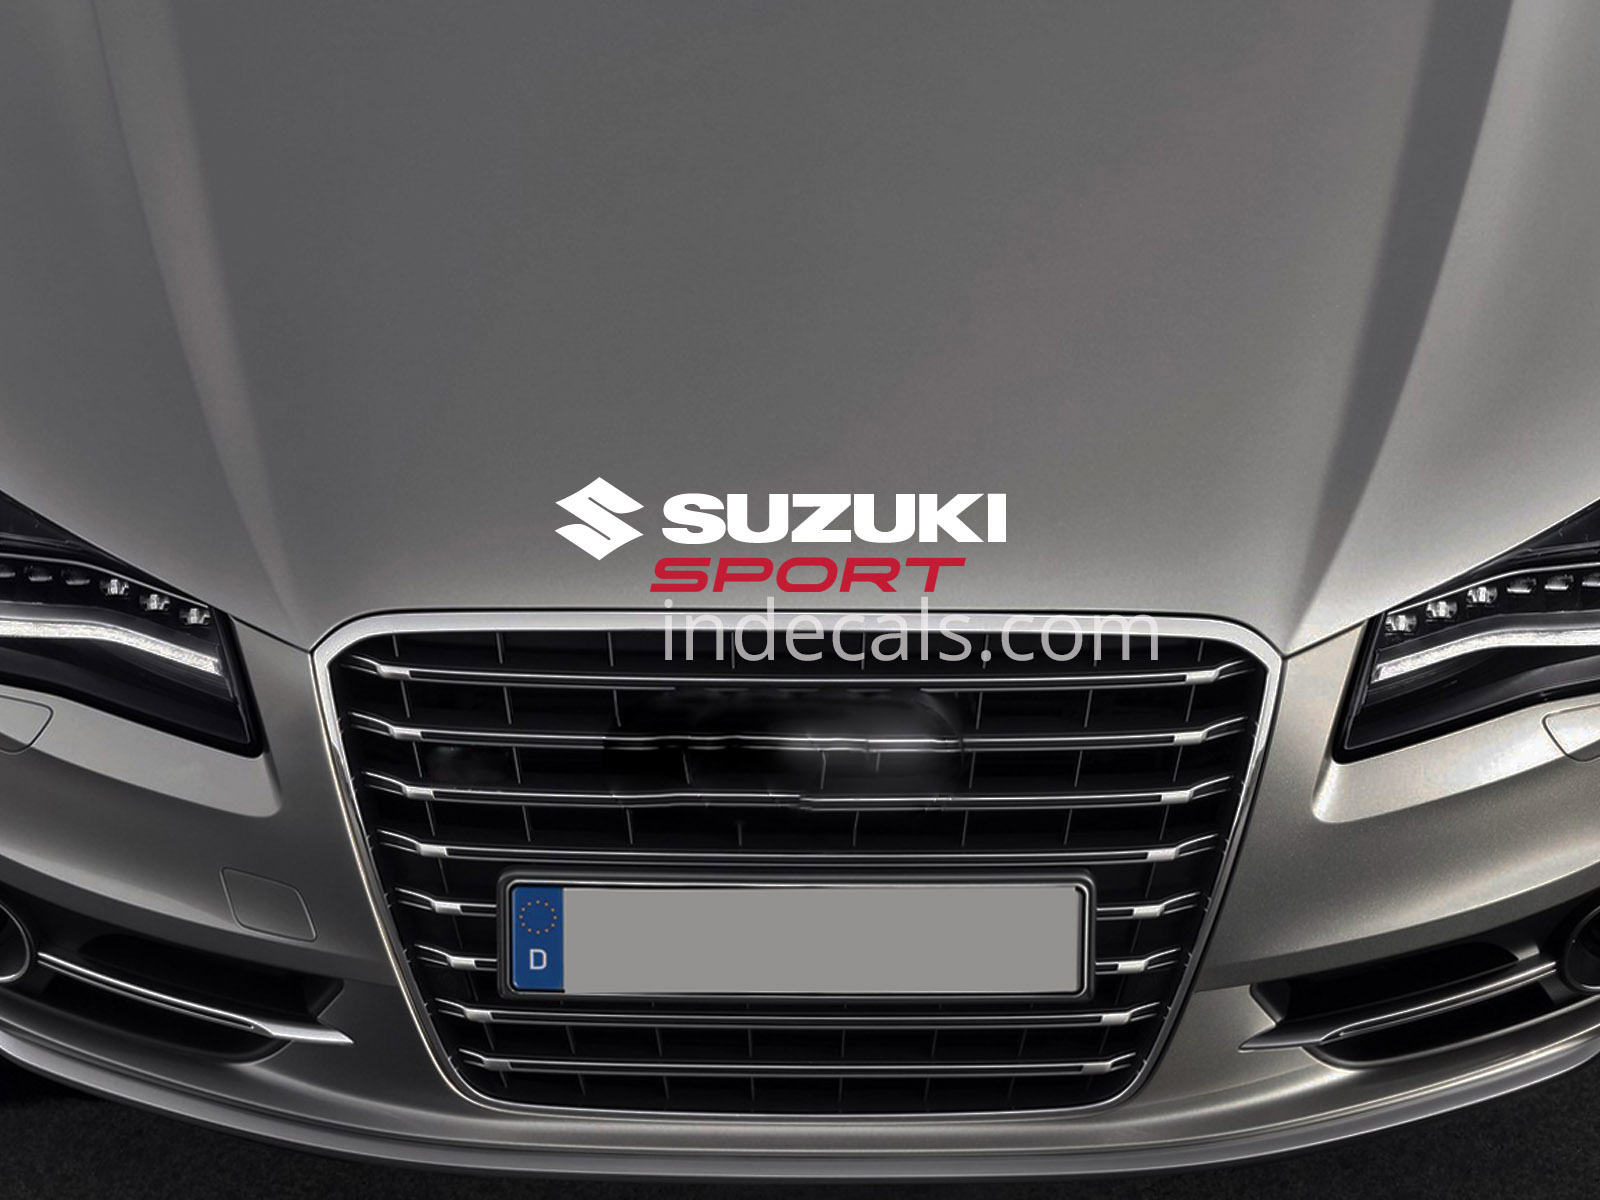 1 x Suzuki Sport Sticker for Bonnet - White & Red